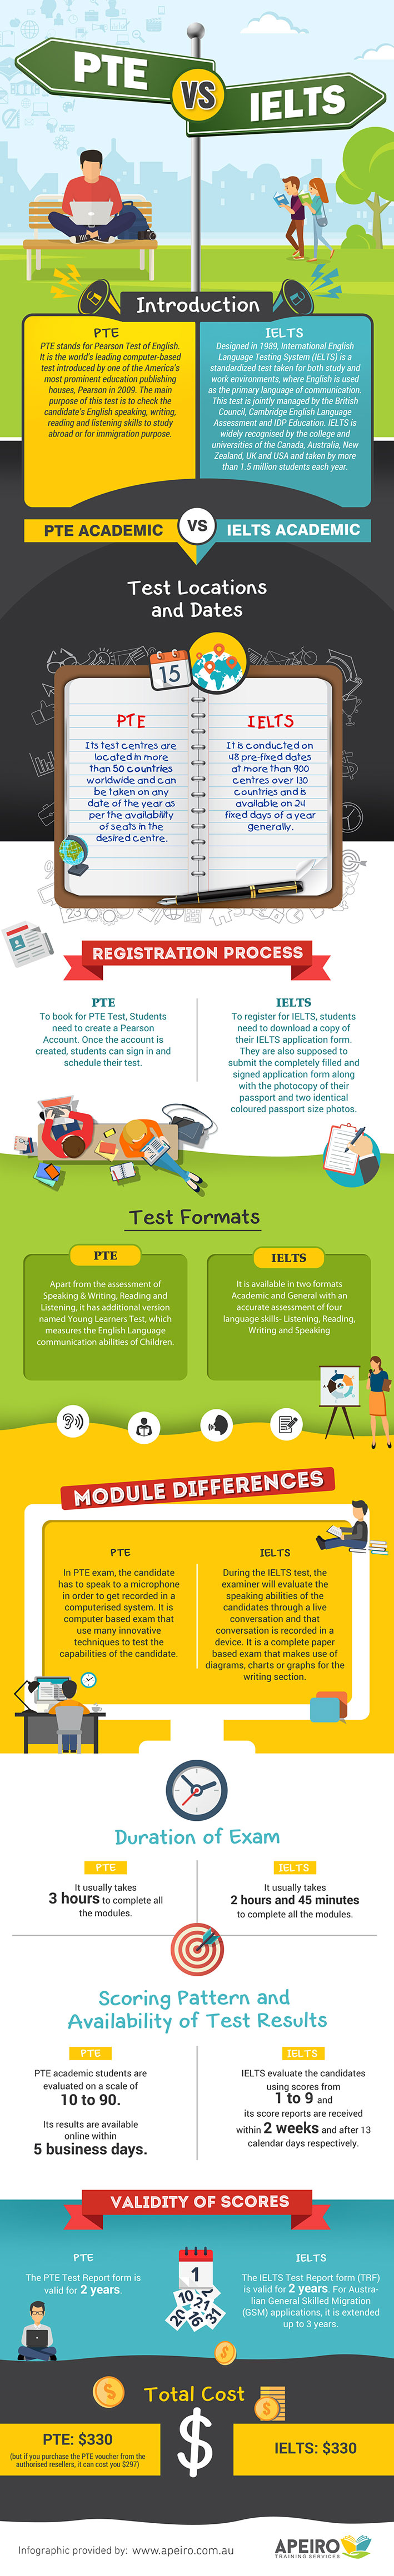 pte-academic-vs-ielts-general-infographic-plaza